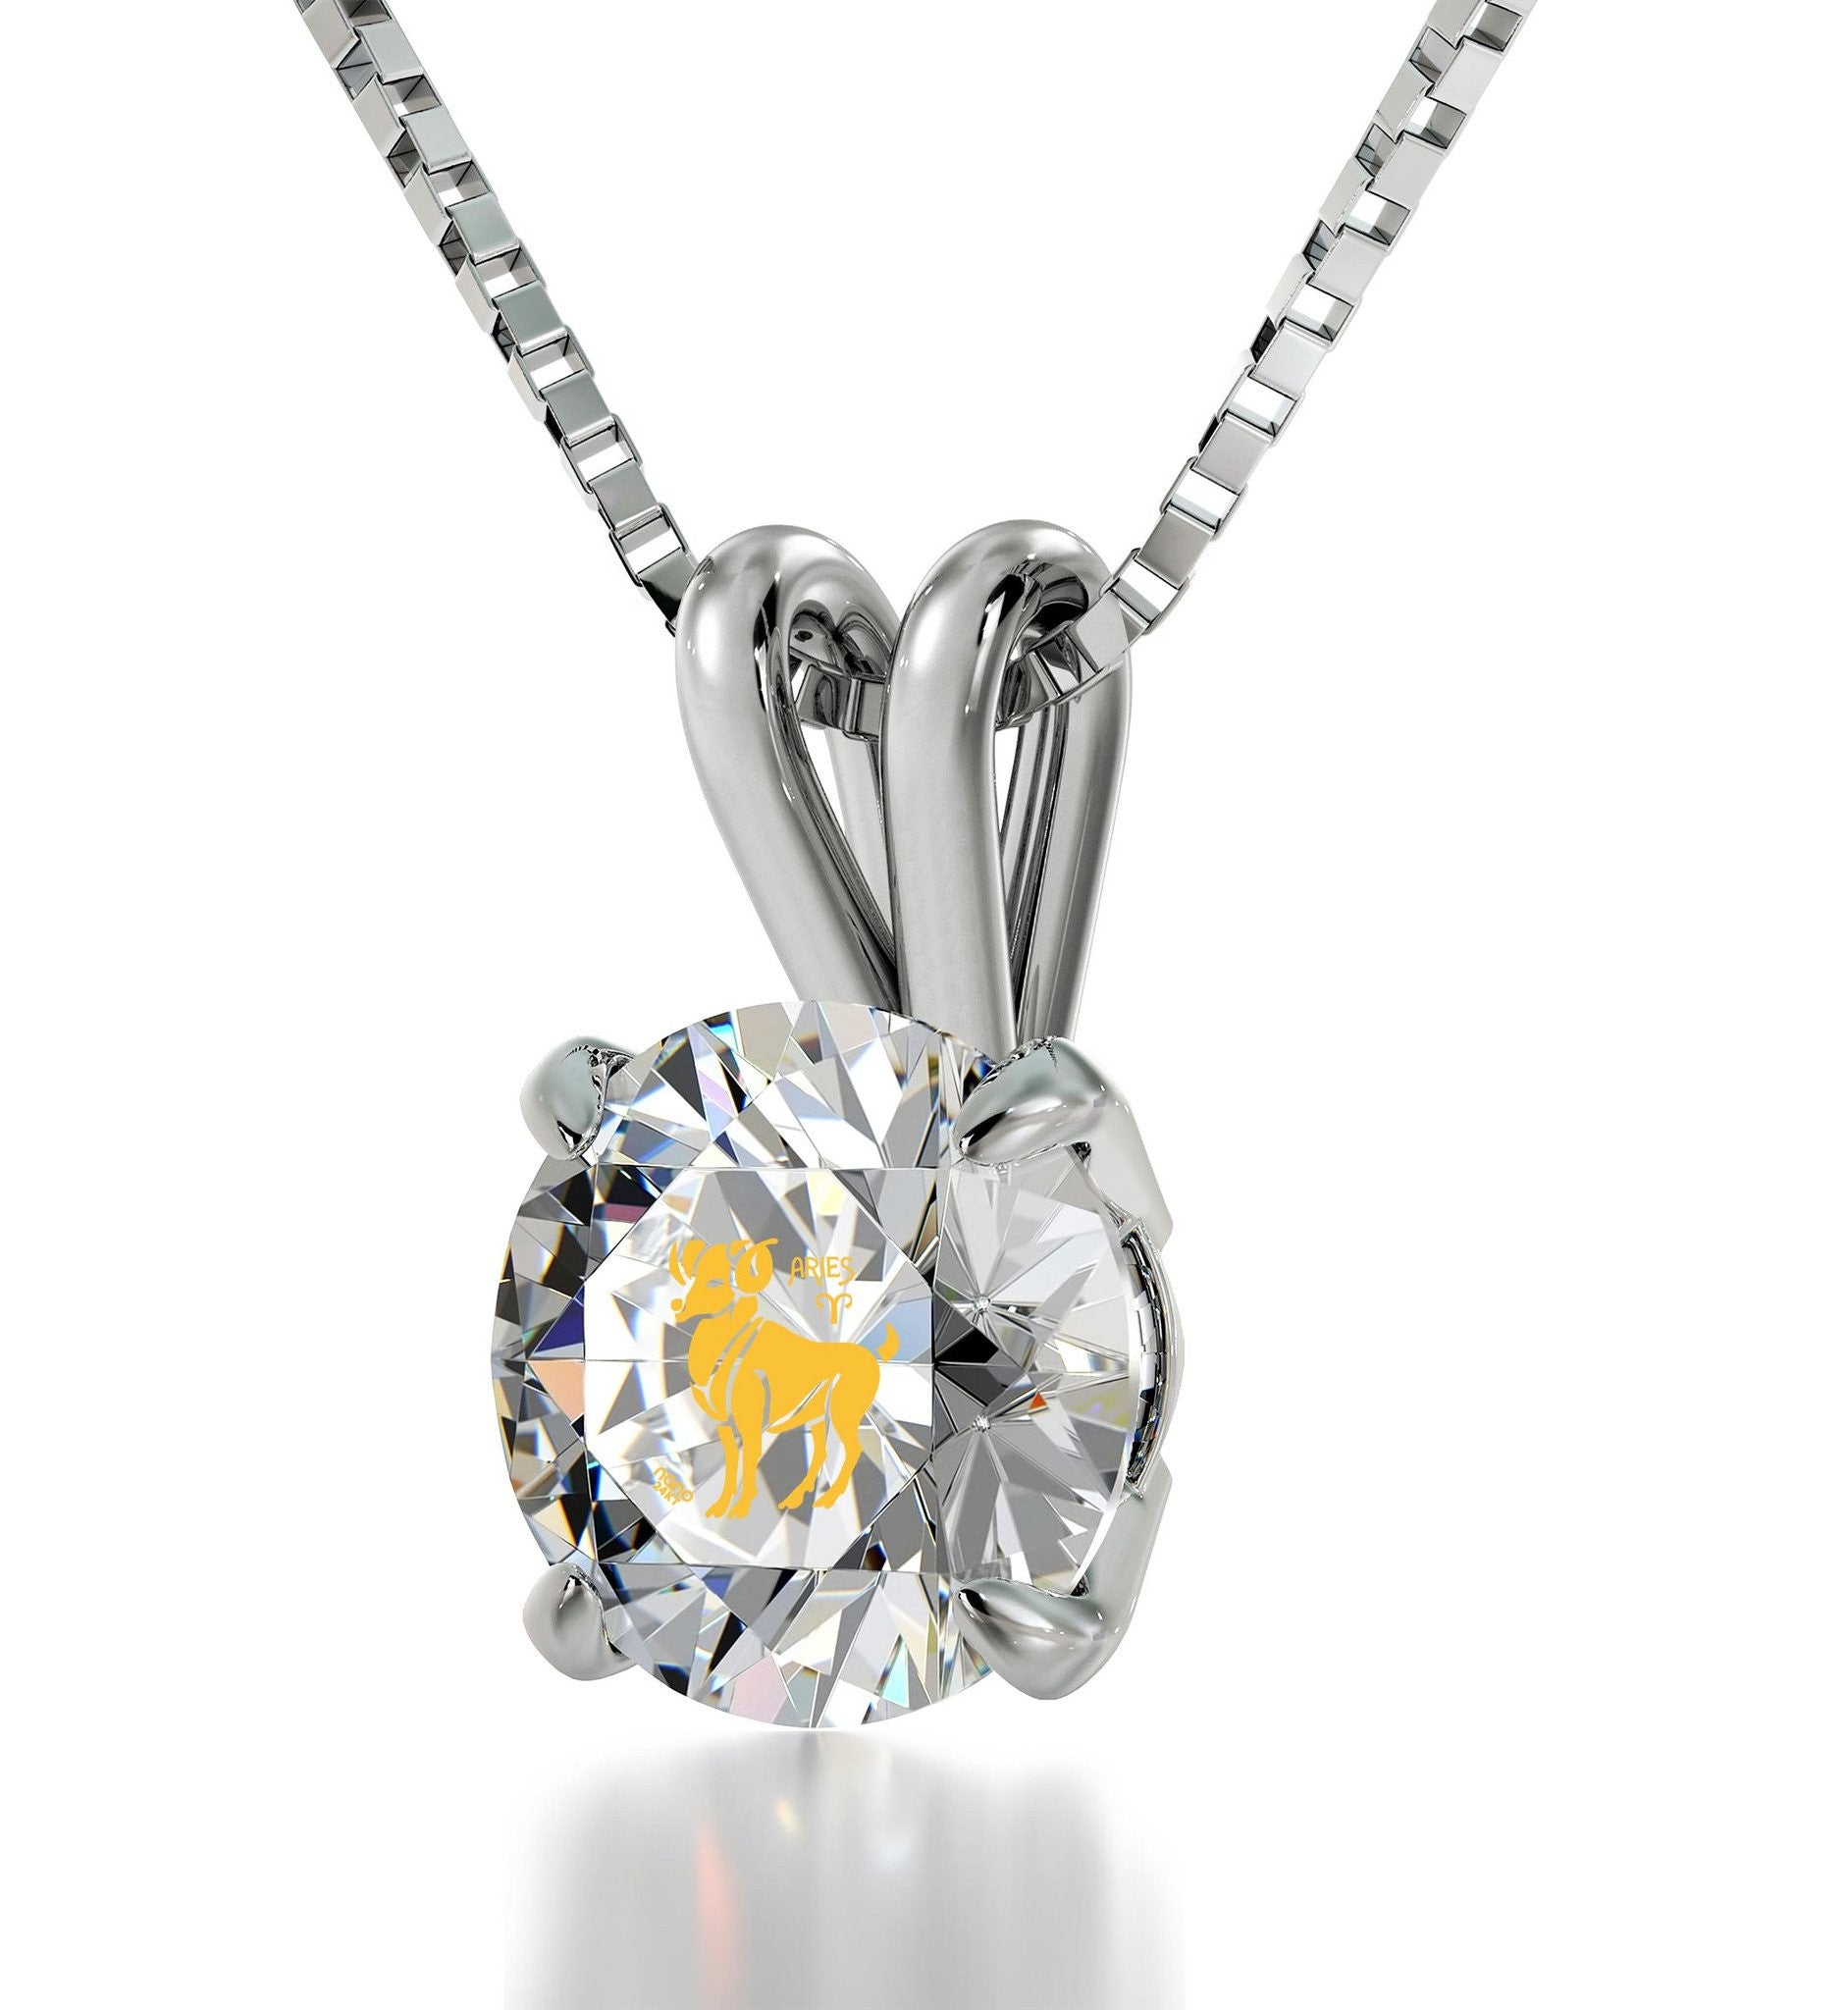 """ChristmasPresentIdeas for Wife, AriesSignPendant, CrystalStoneJewelry, Valentine'sDayGifts for Girlfriend"""